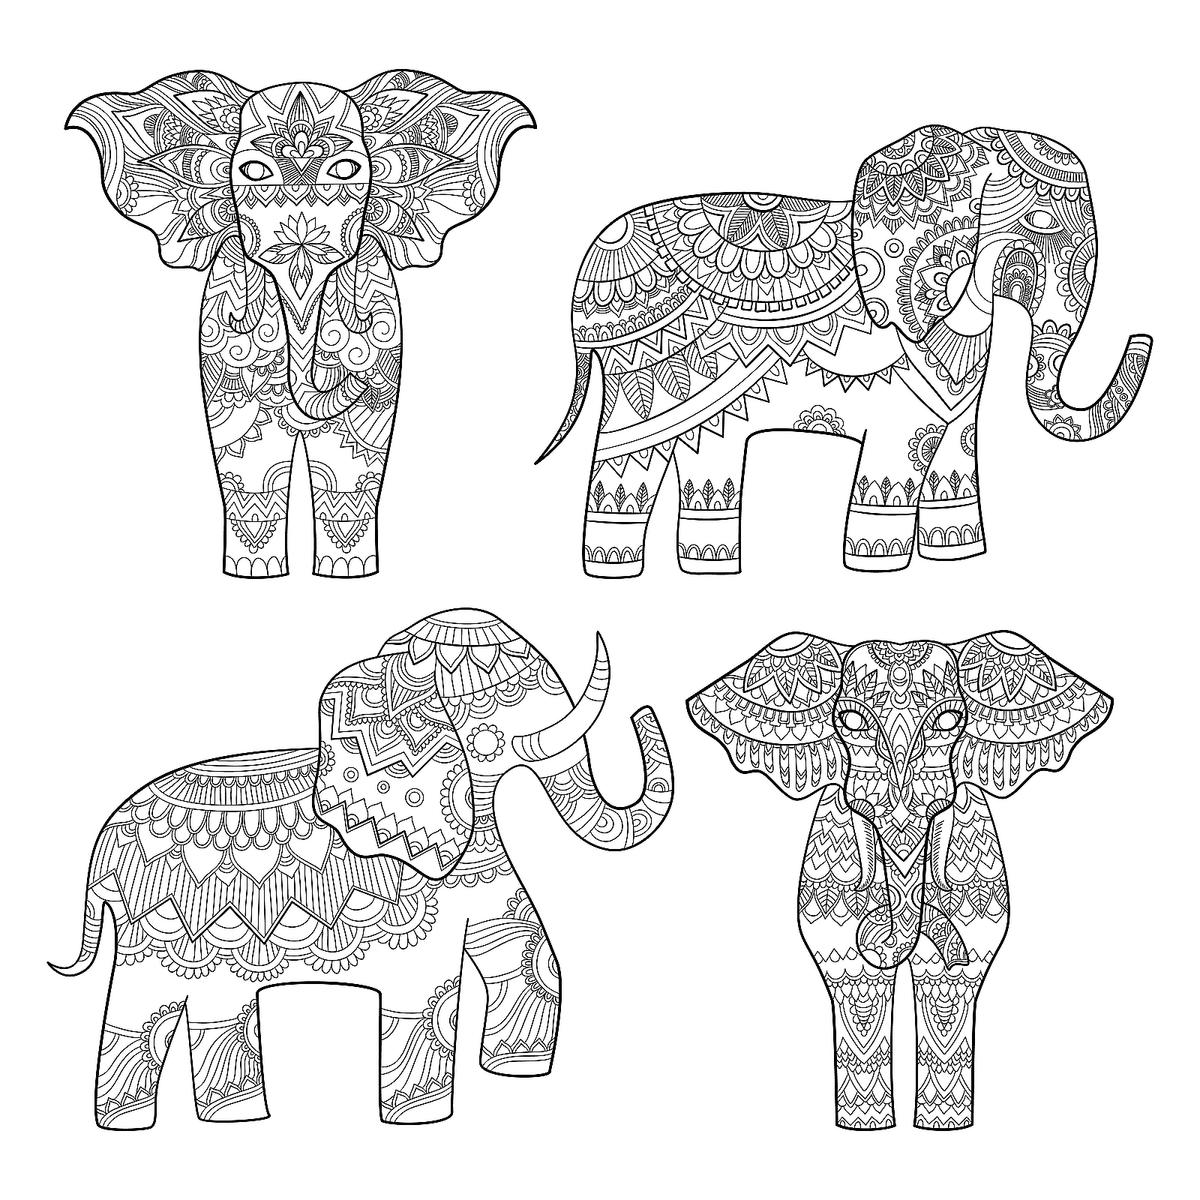 coloring pics of elephant elephant coloring pages 12 free fun printable elephant of pics elephant coloring